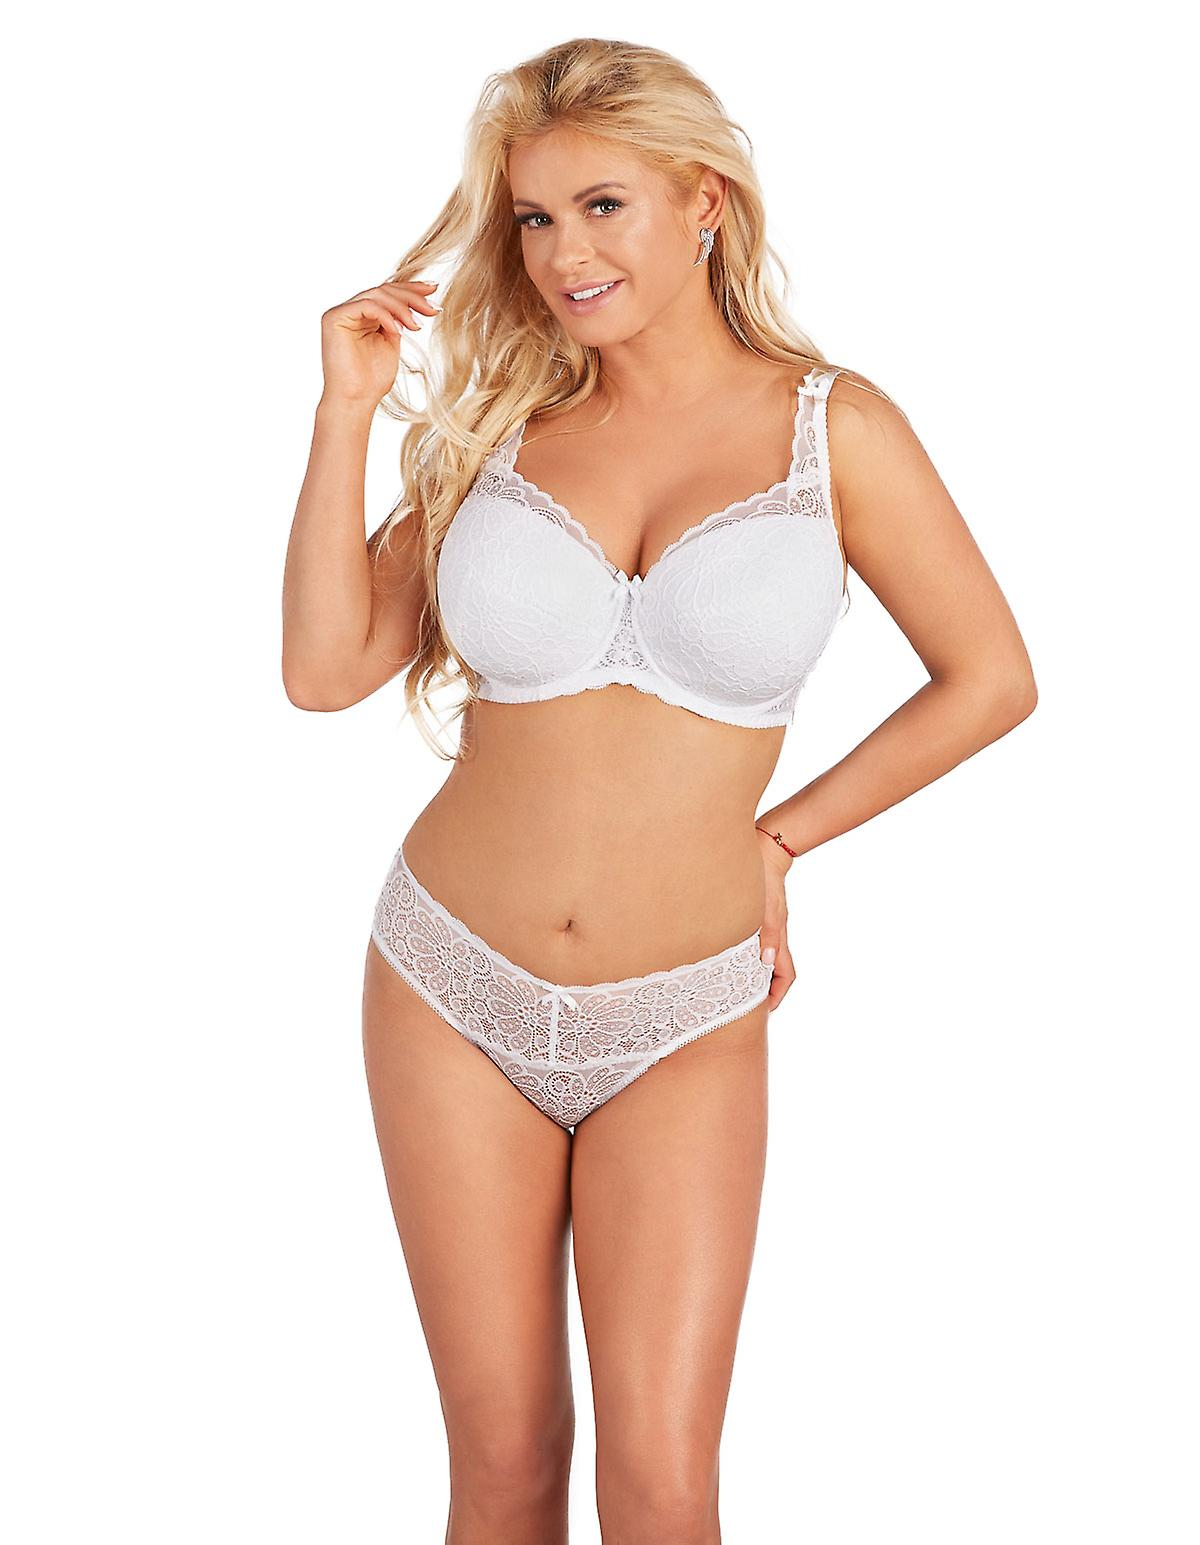 Nessa Women's Abbi White Padded Underwired Full Cup Bra laLE8W